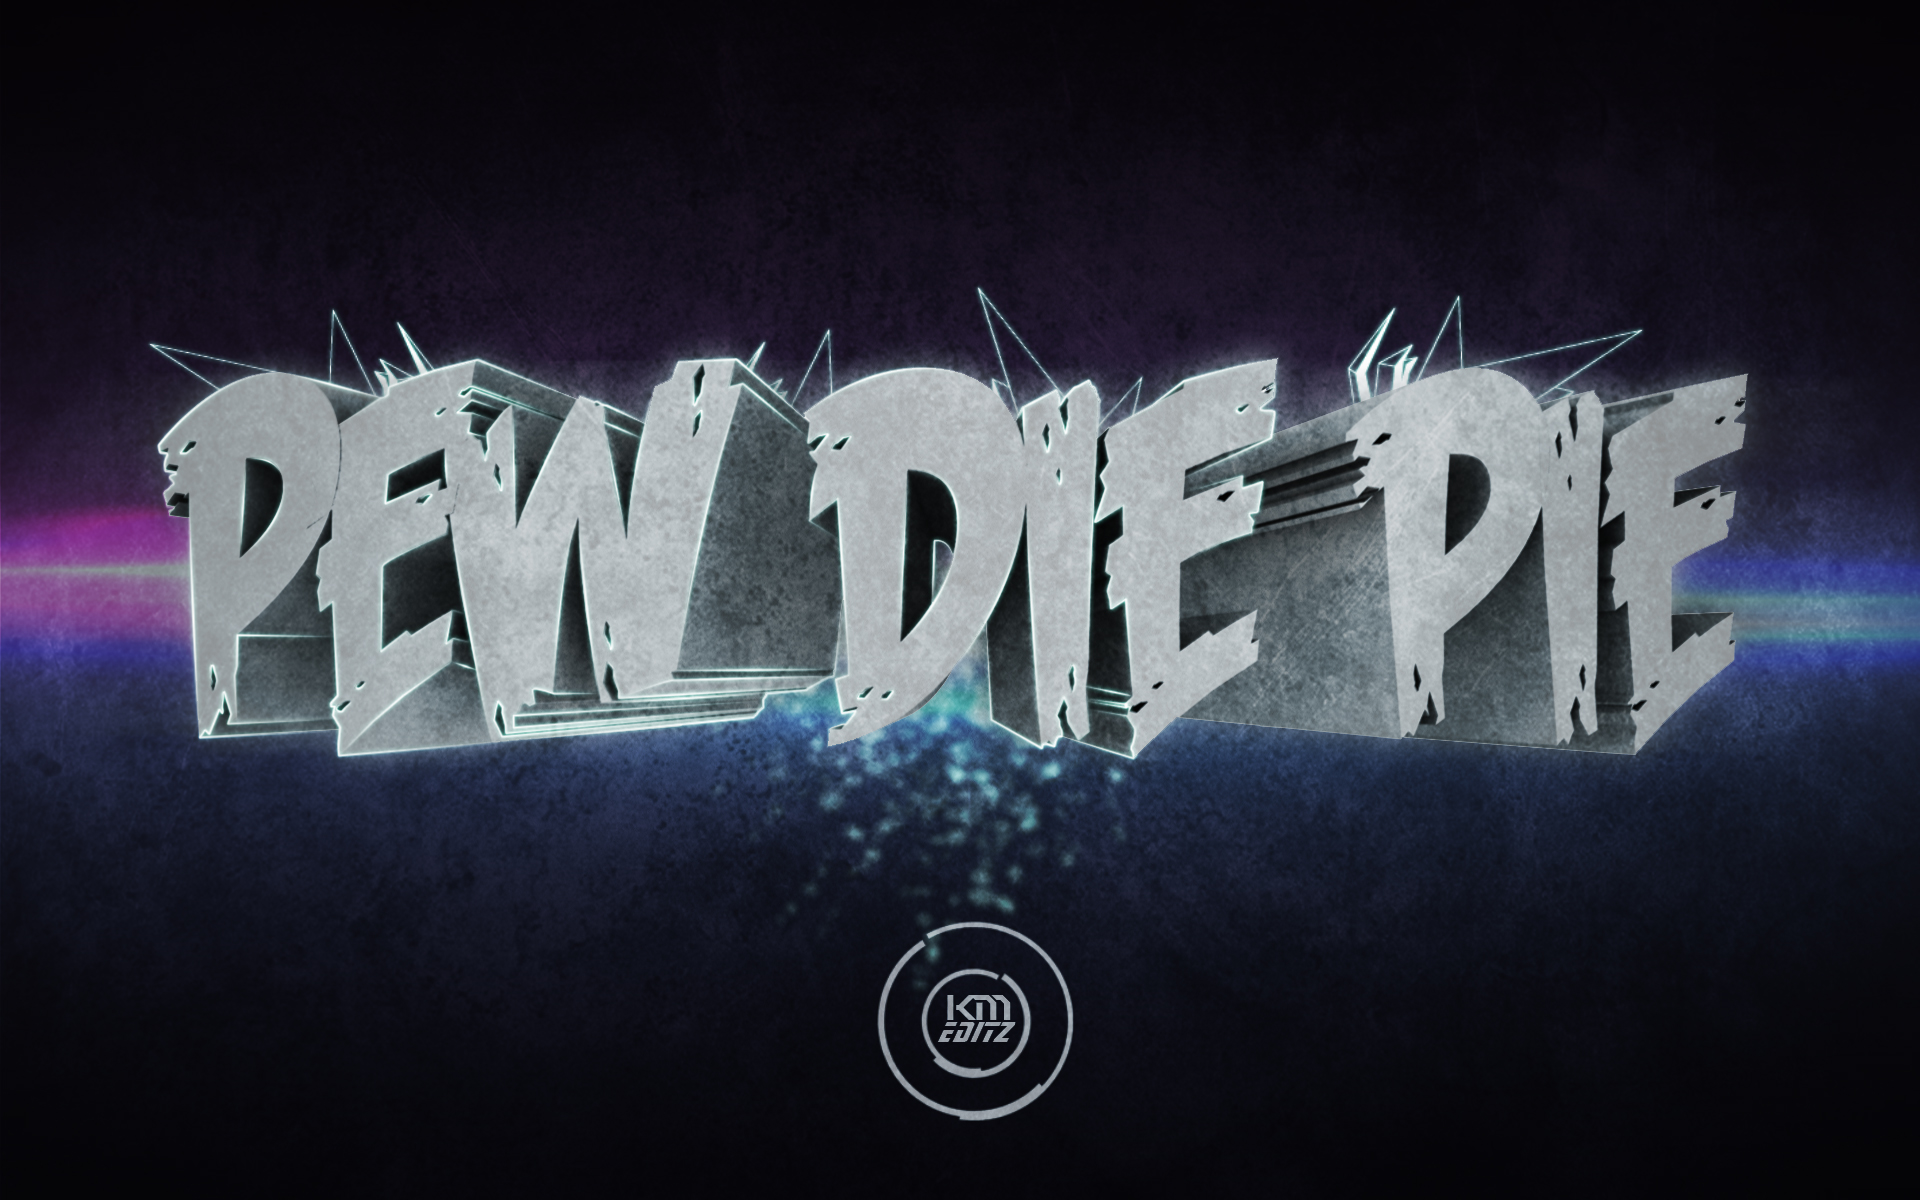 All Pew Pie Felix Kjellberg Wallpapers X